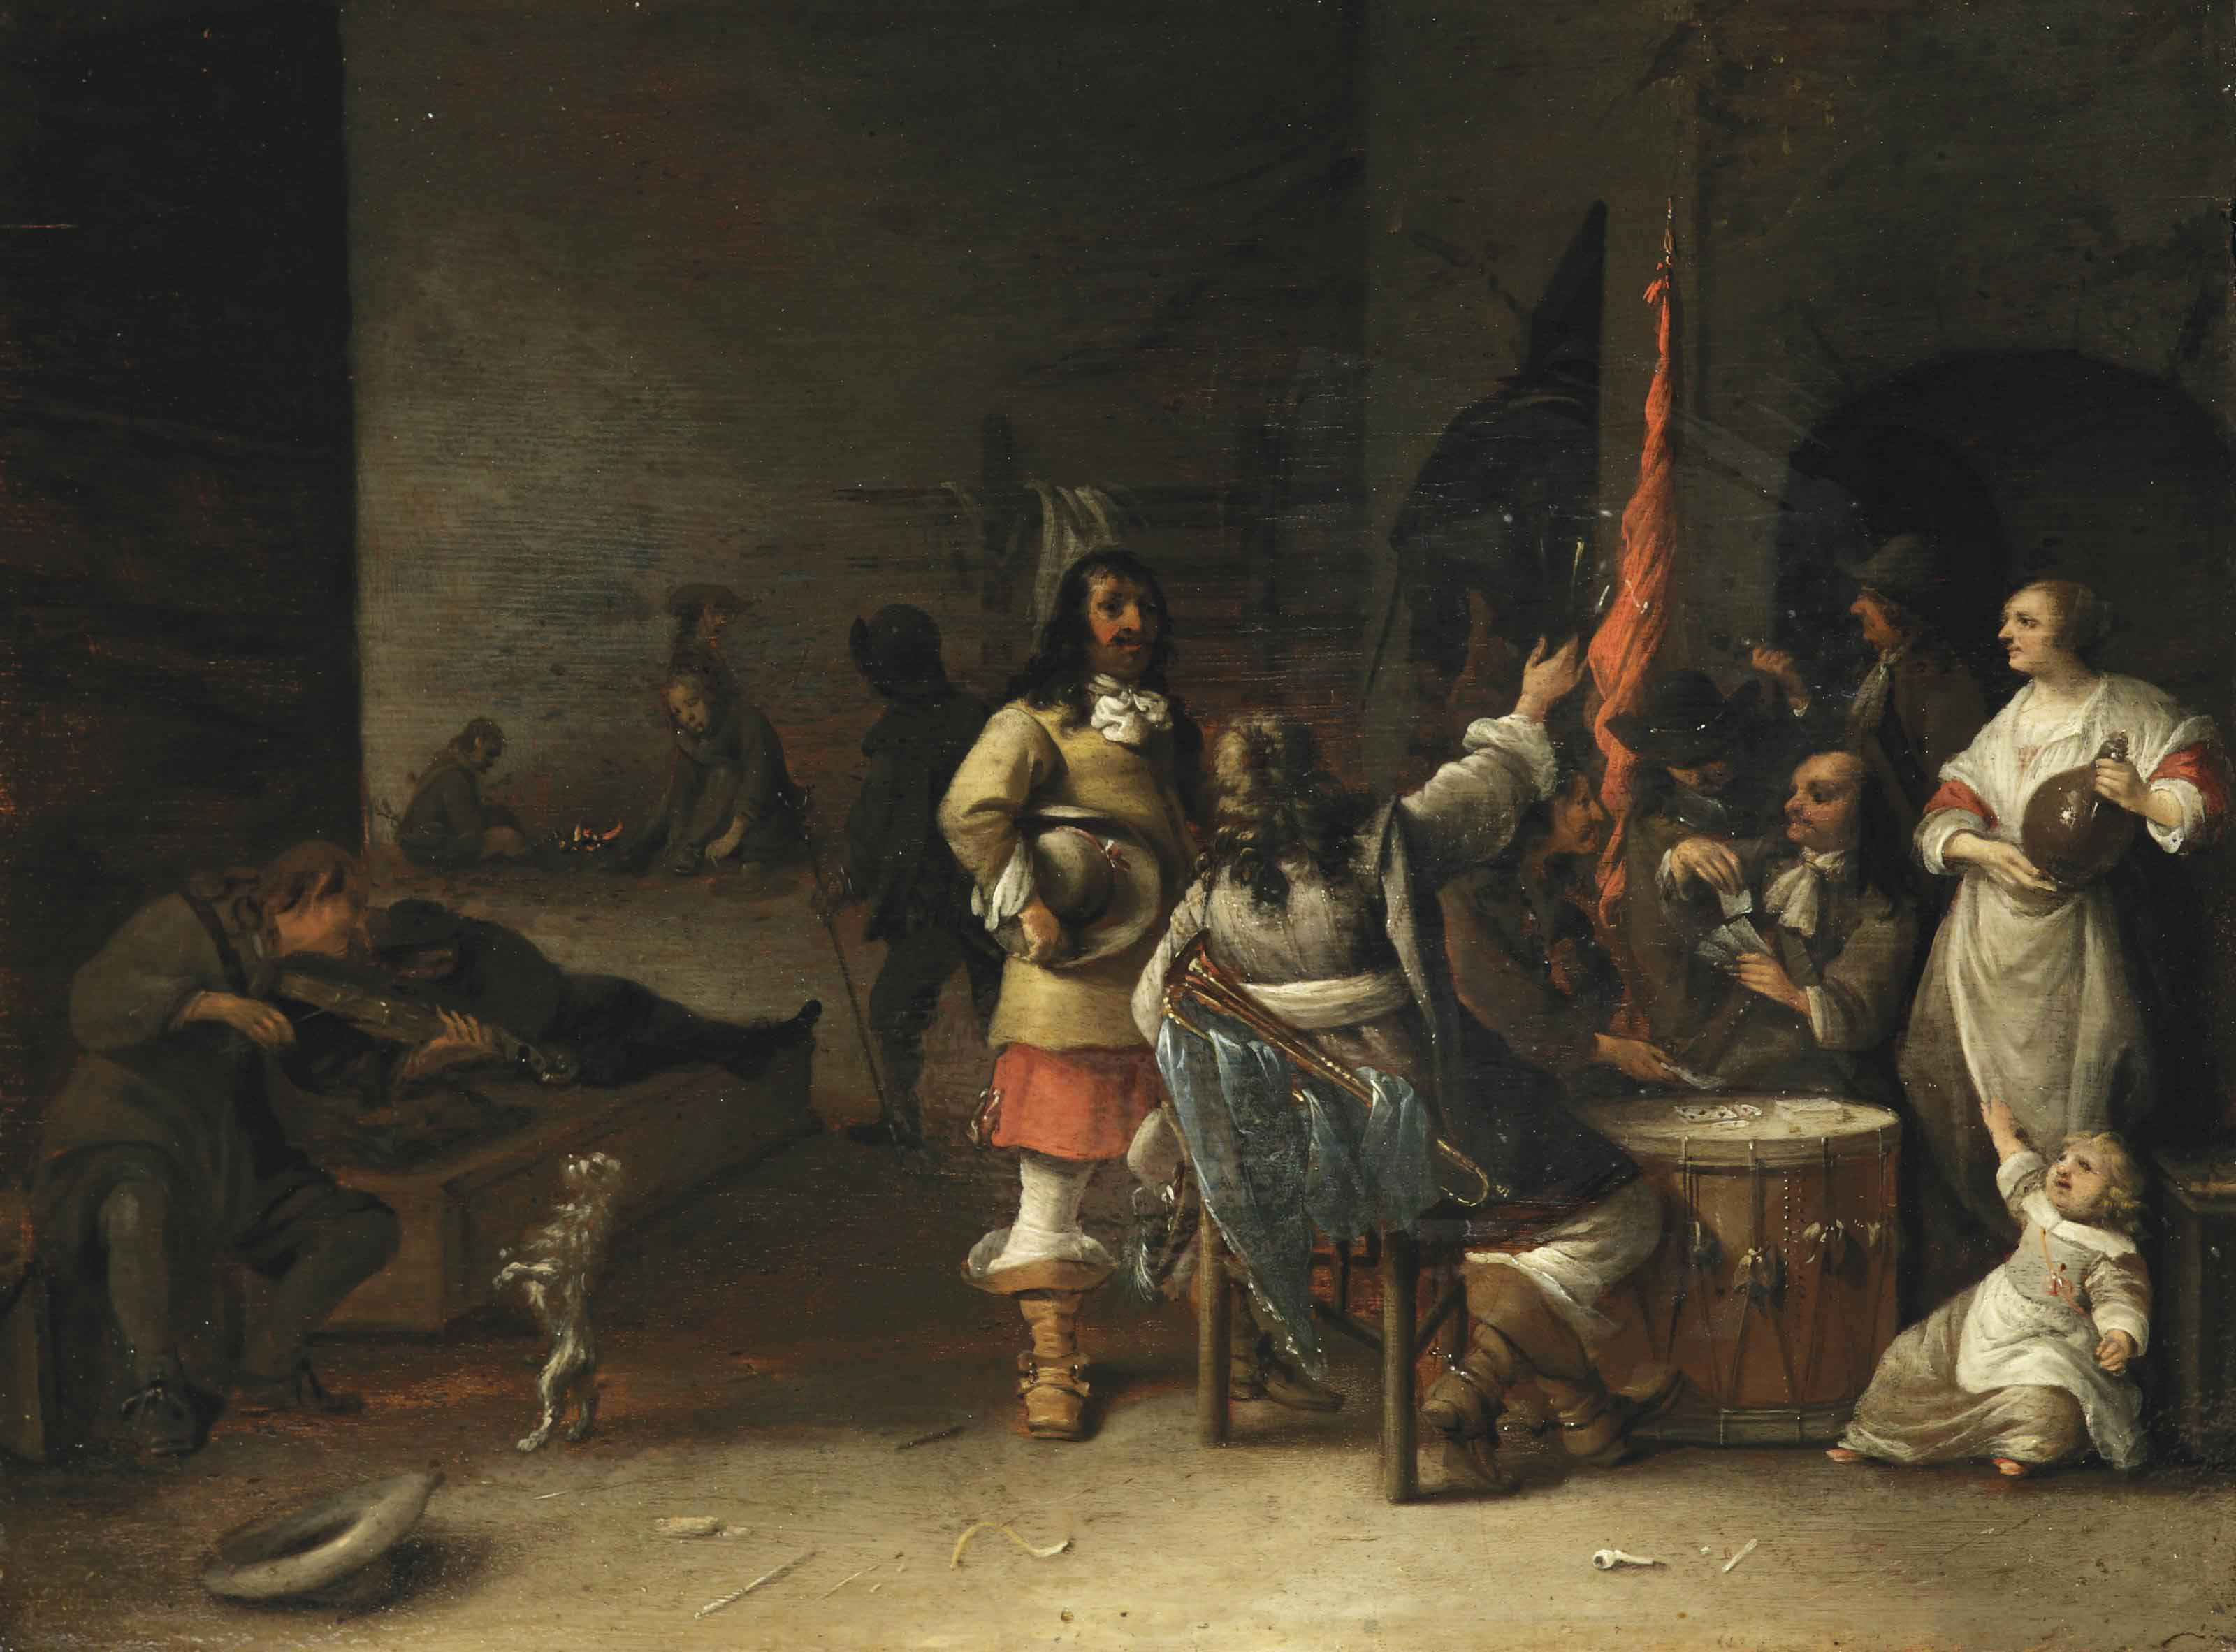 Guards in an interior